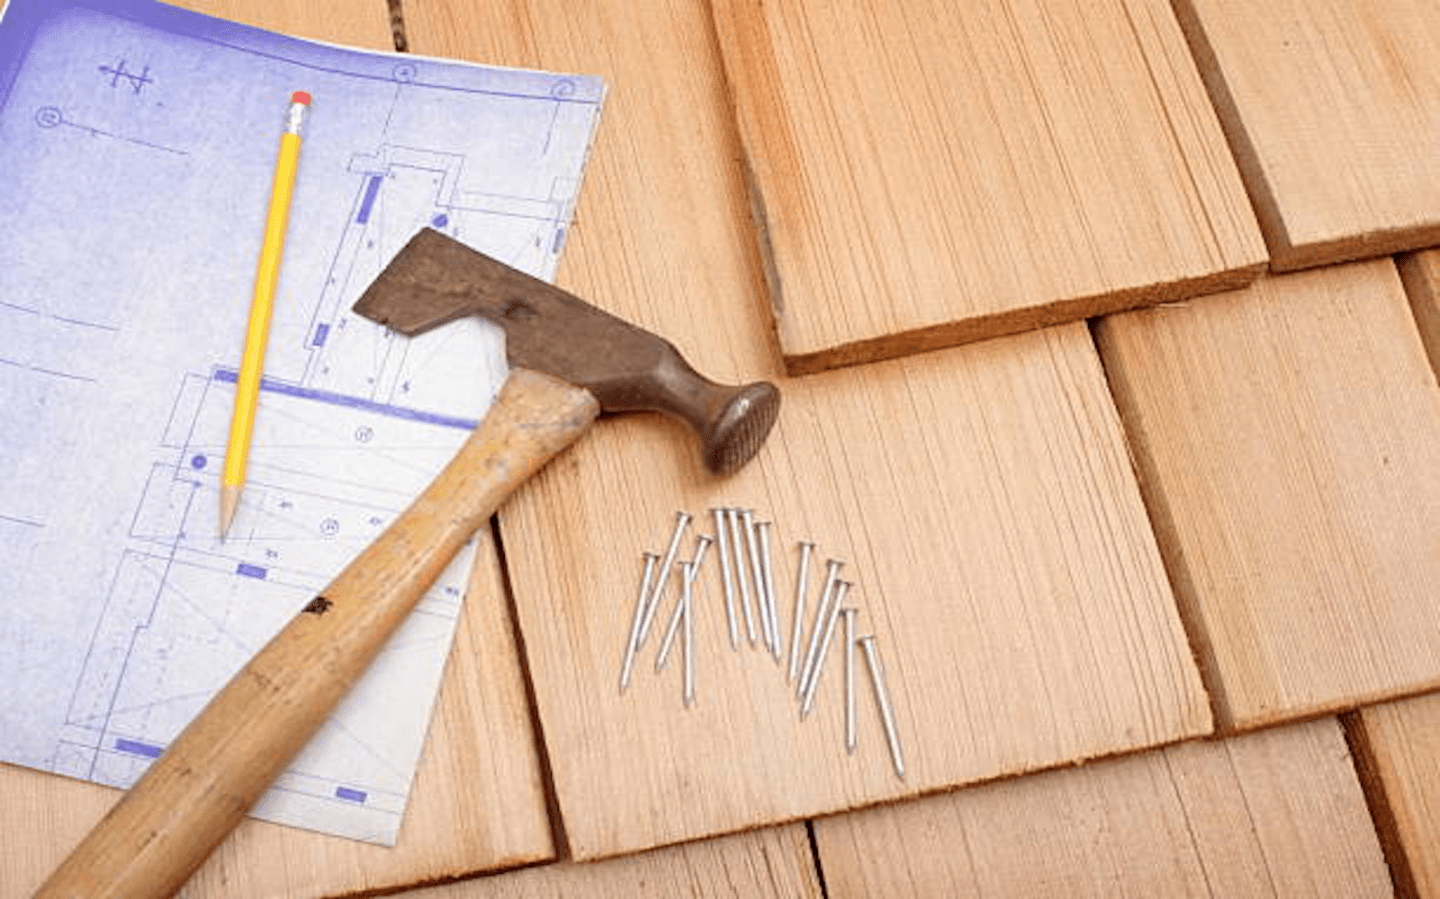 What are the Construction Options for a Self-Build Home?